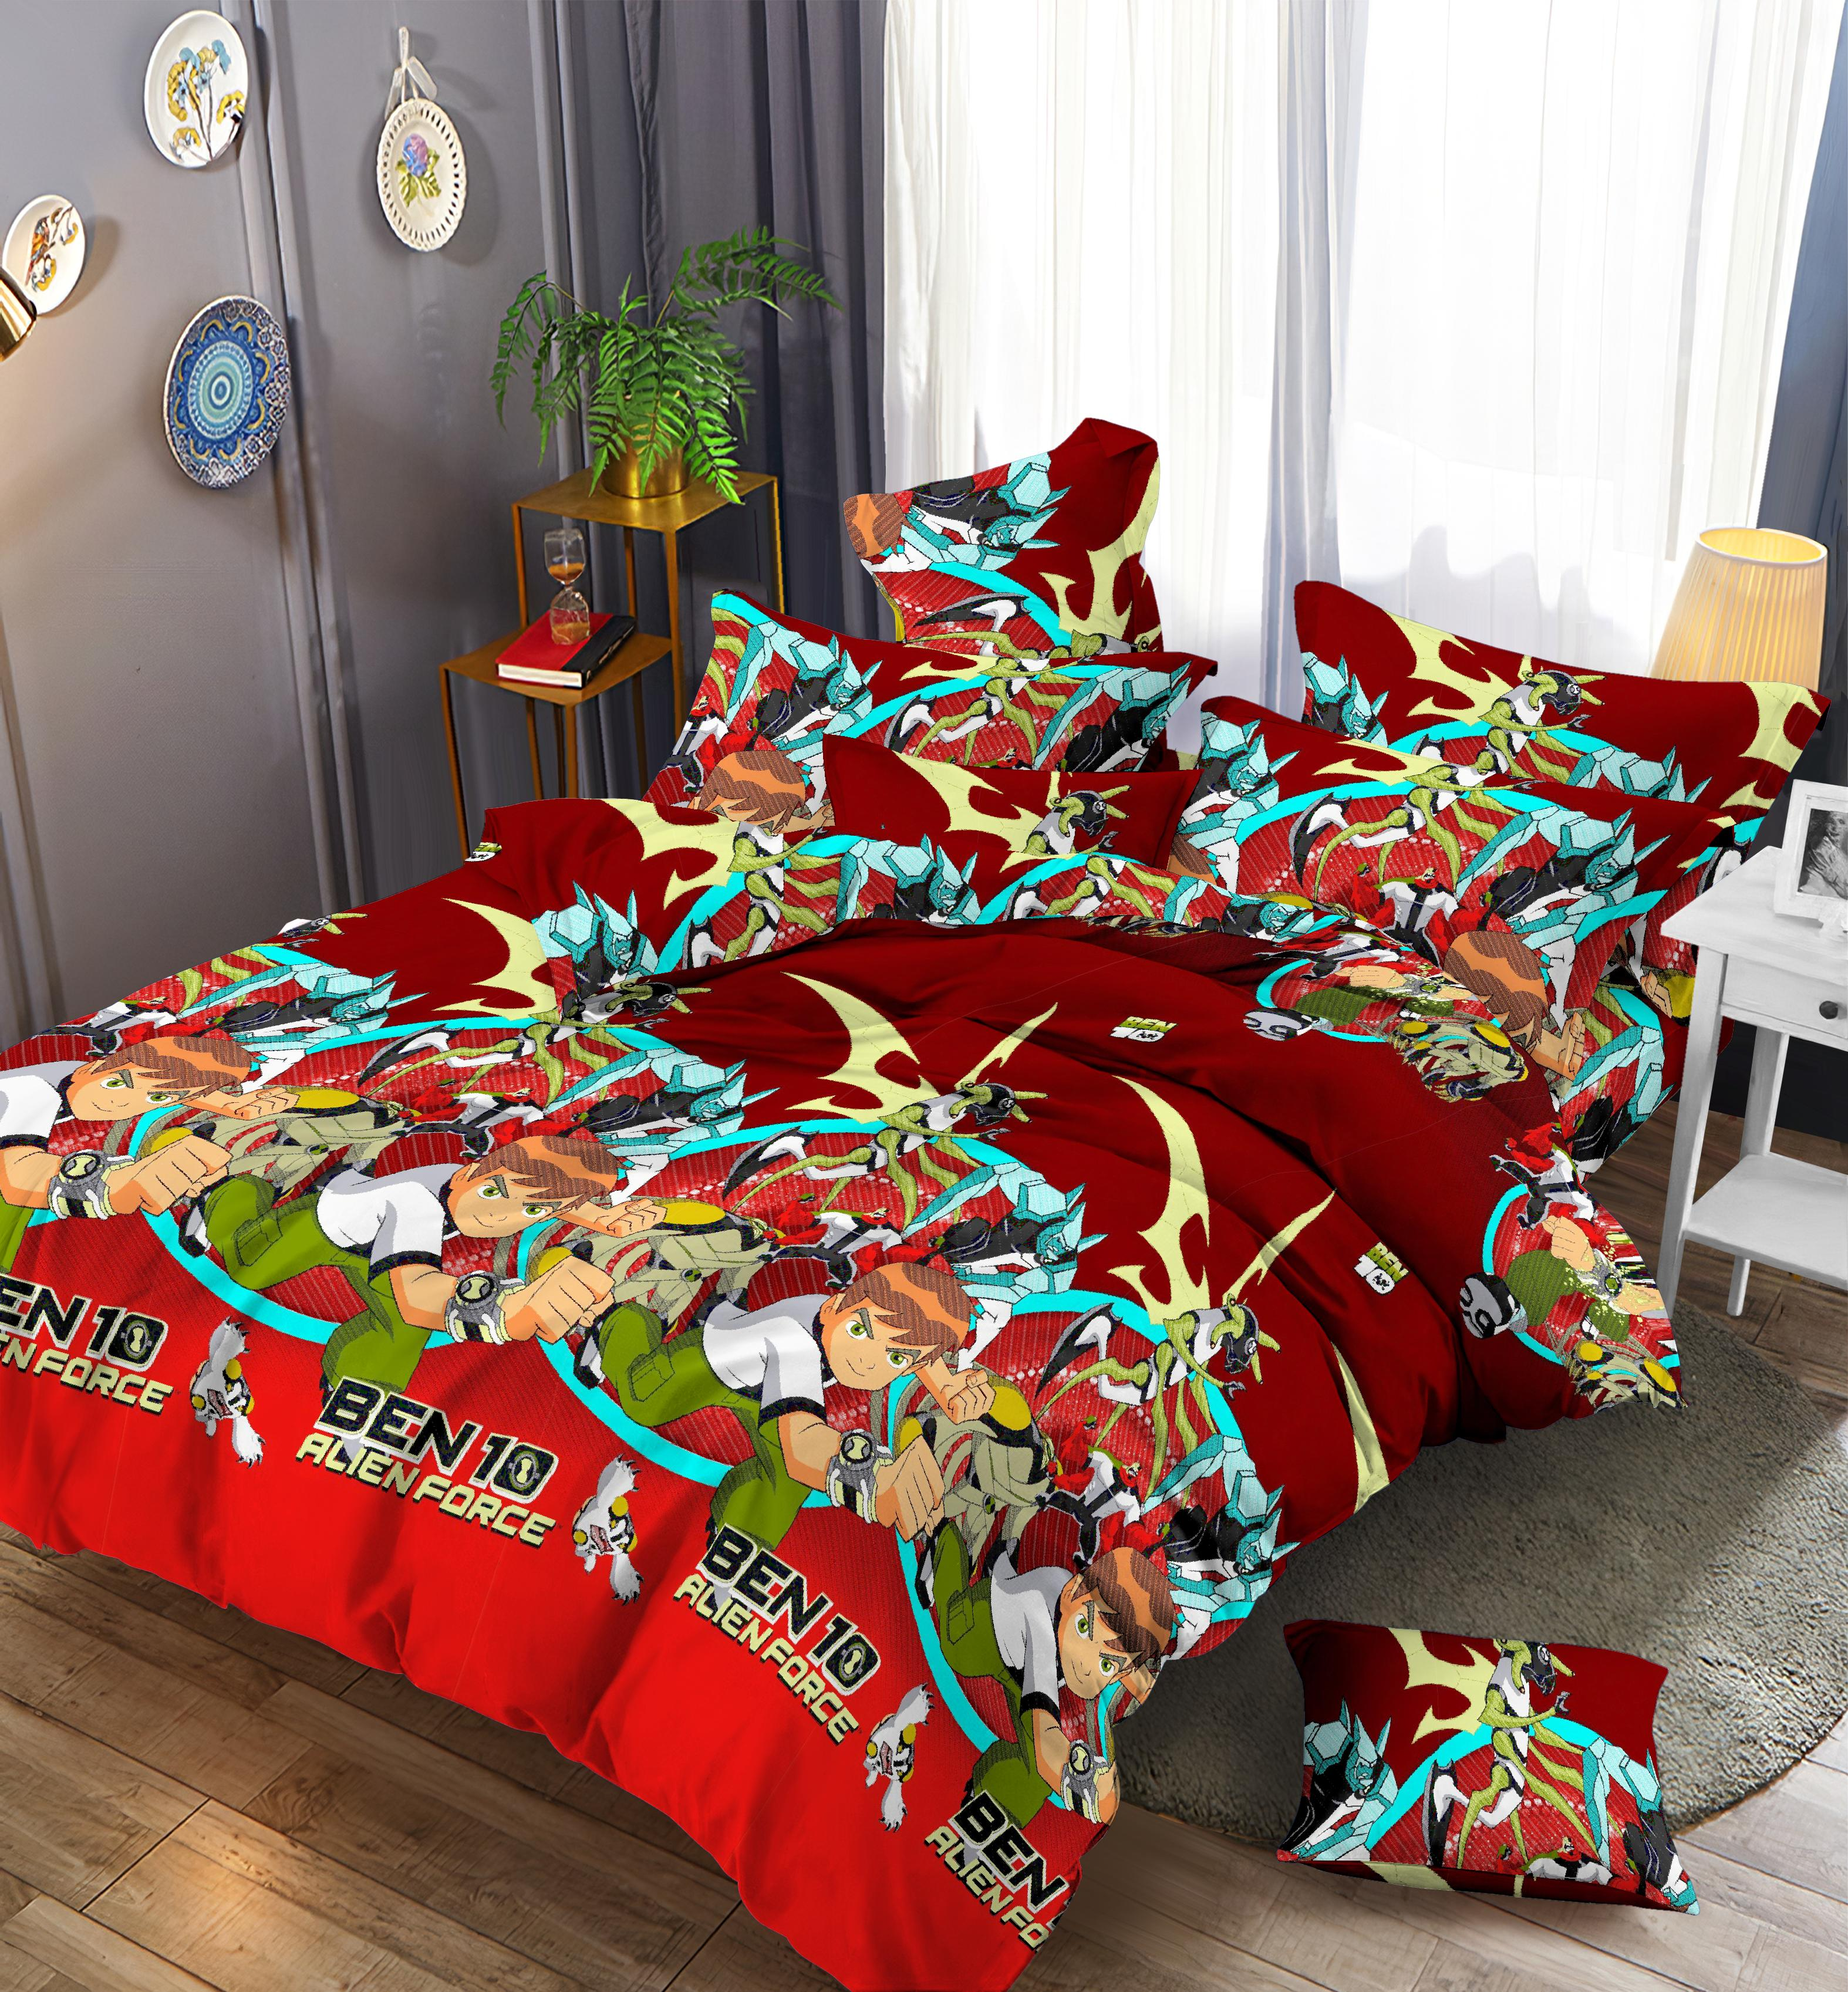 Cute child bed cover set 4pcs cheap white print double bed sheets on sale